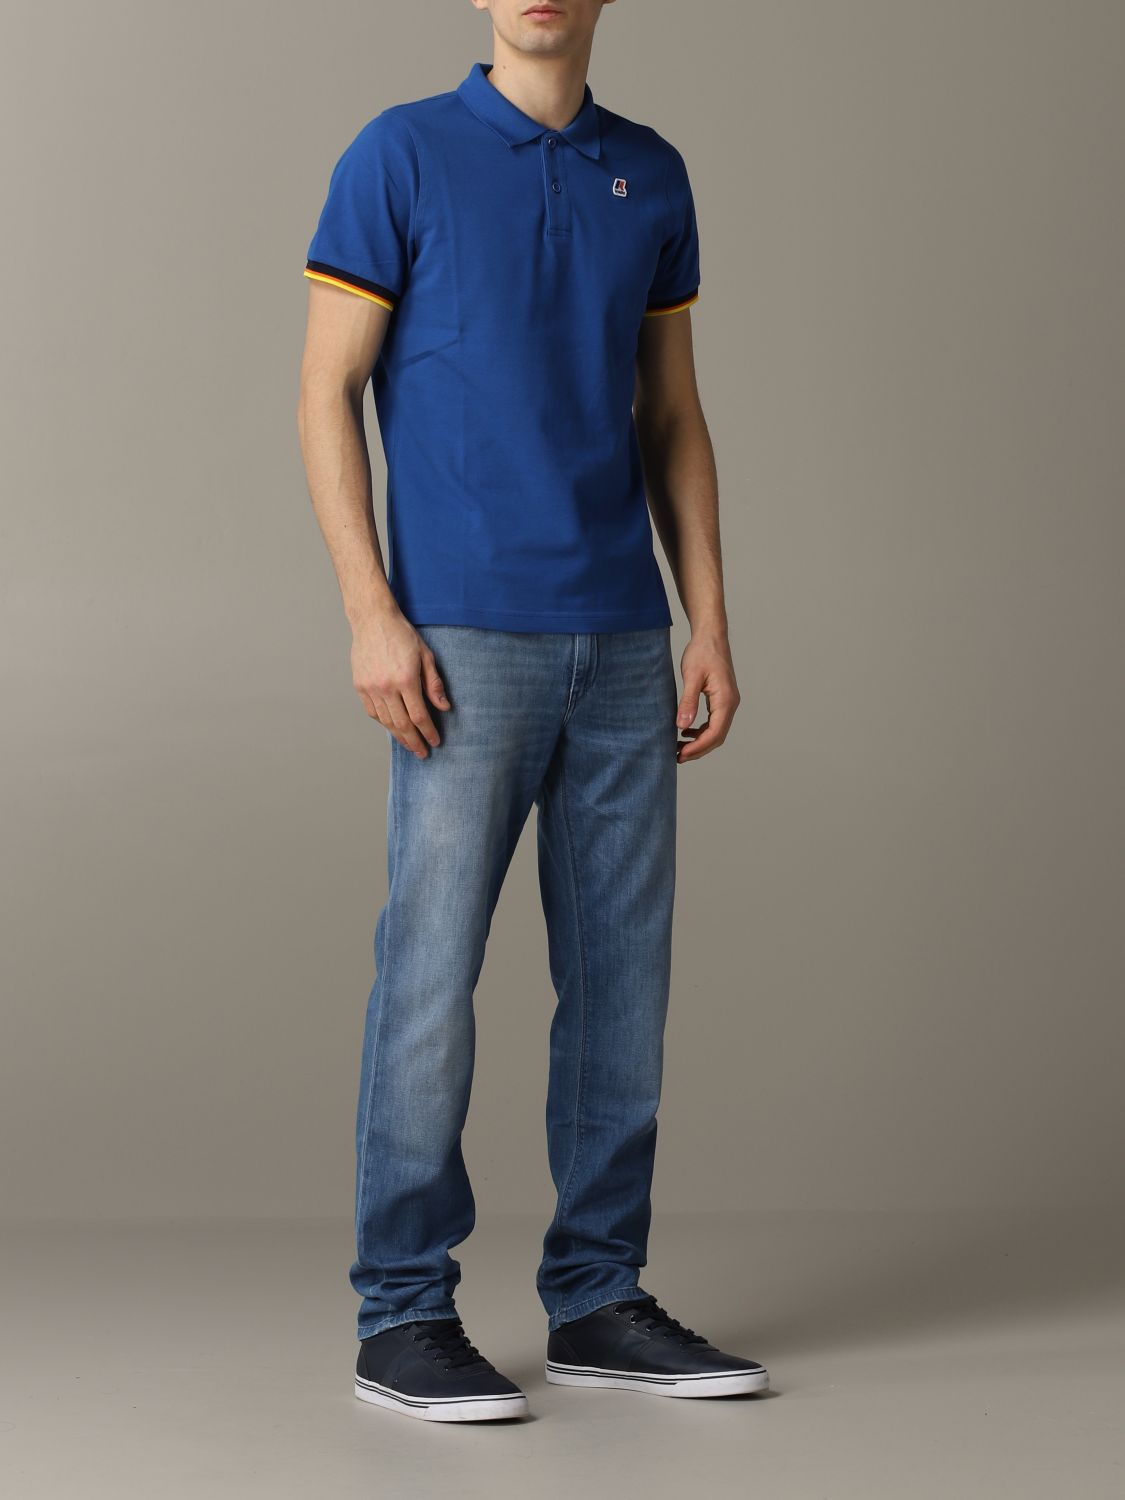 Polo herren K-way royal blue 2